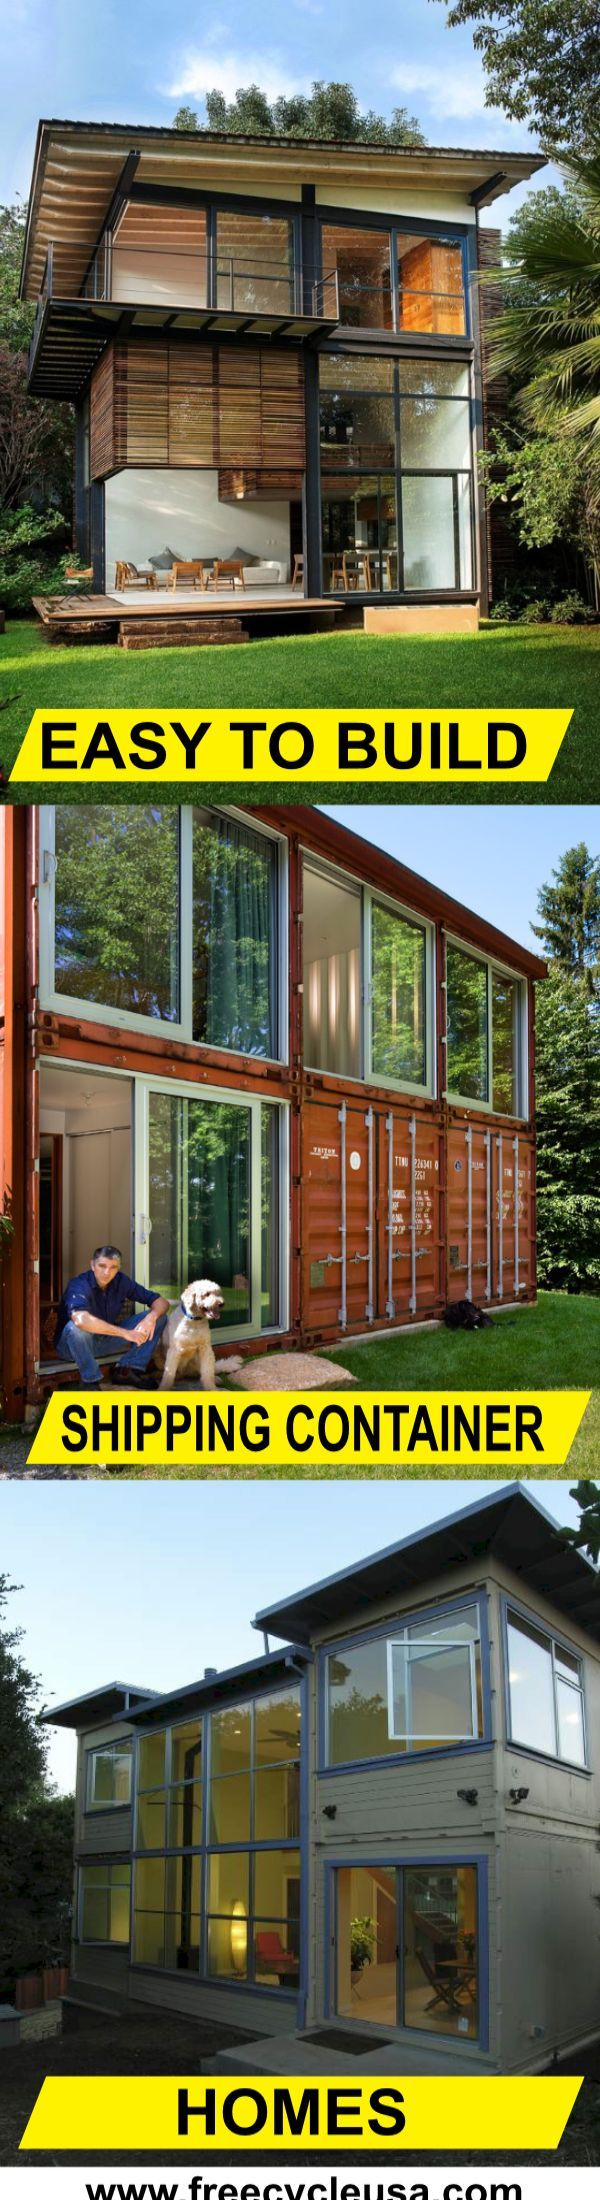 Build A Container Home Now